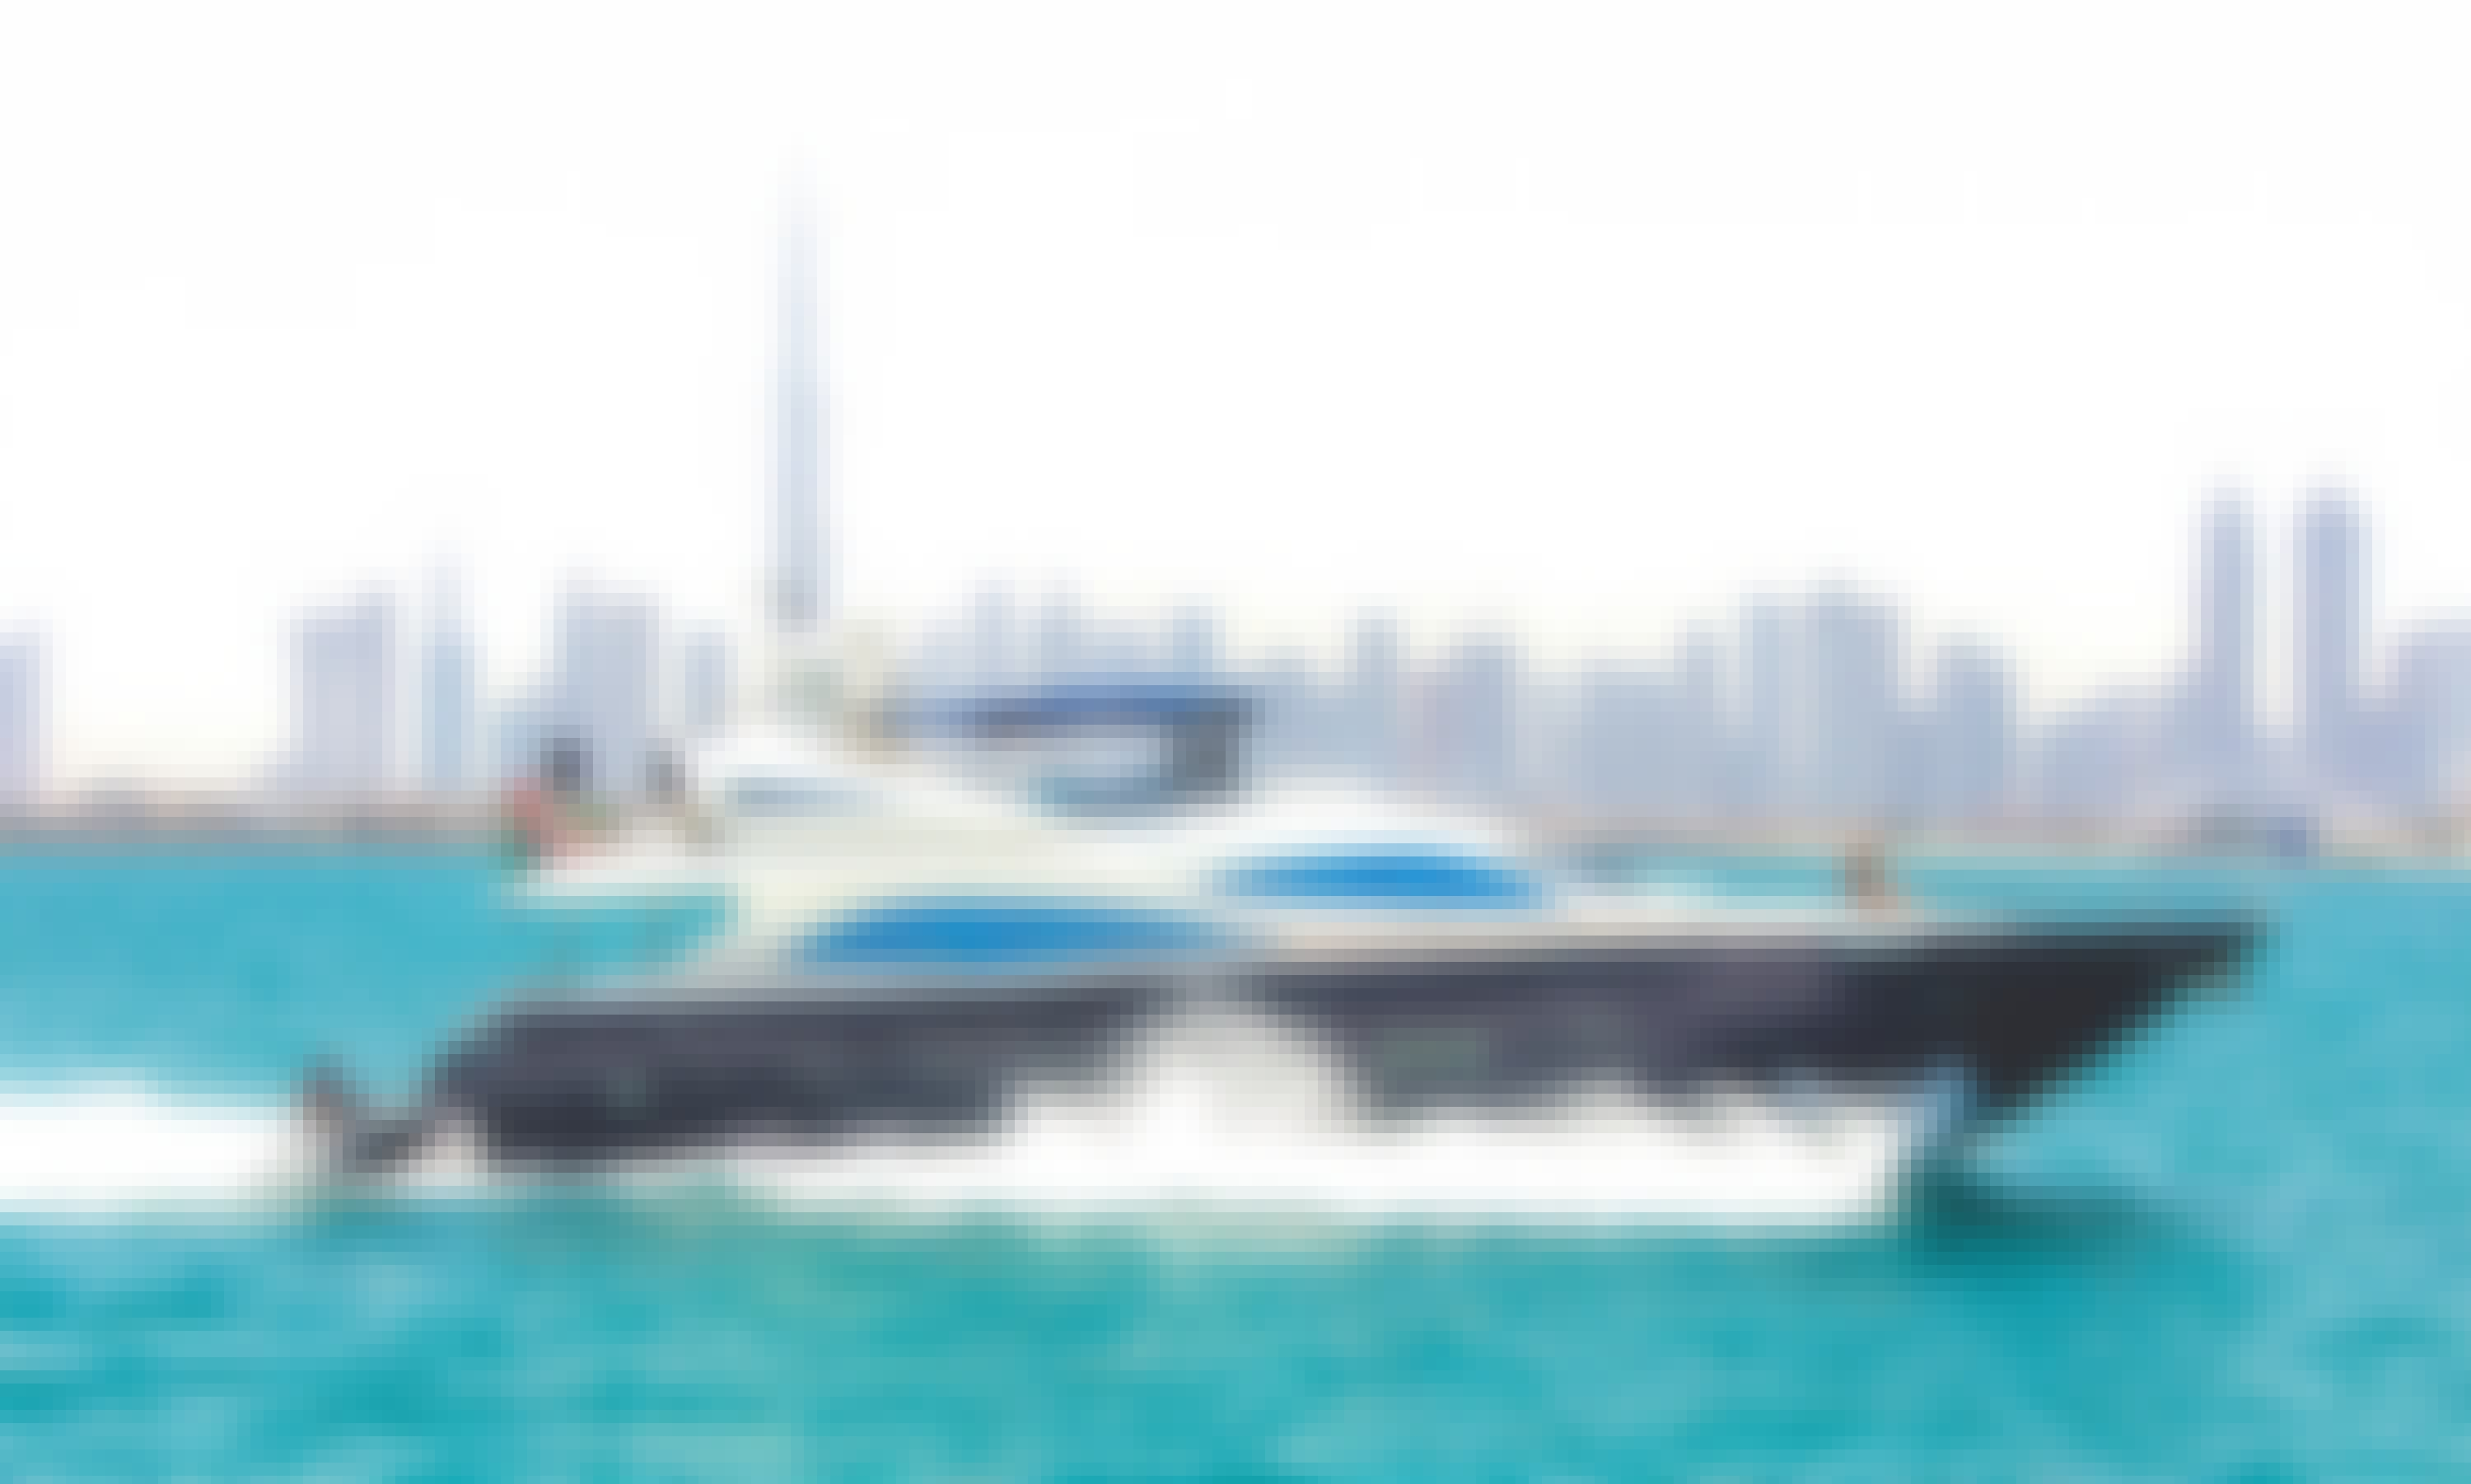 Rent Yacht in Dubai 90 ft - (for 20 pax) - Luxury Collection